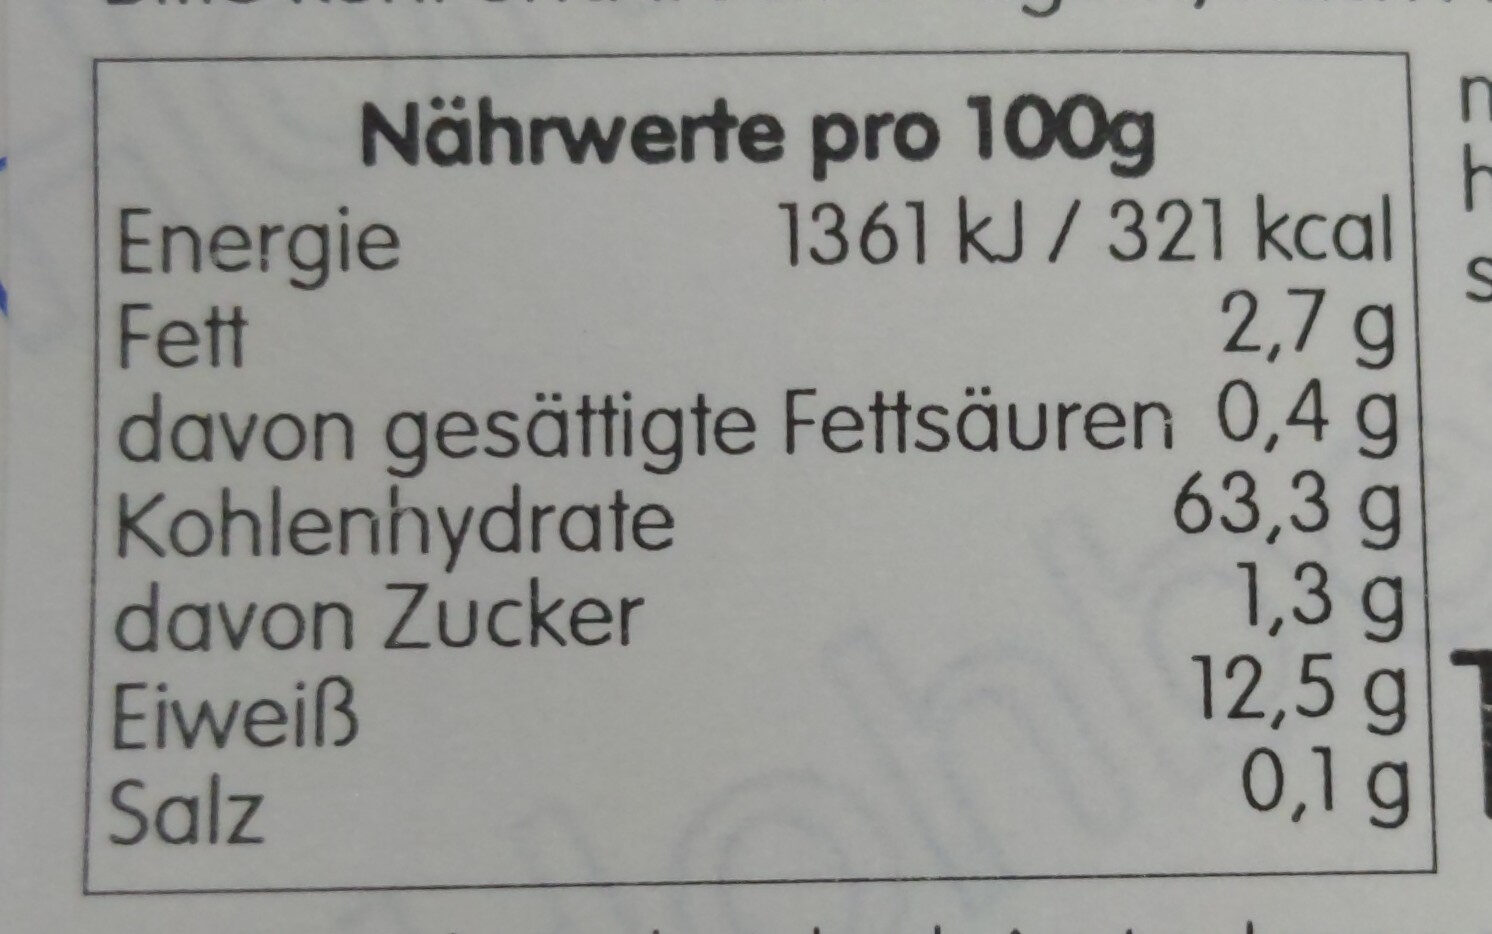 urkorn emmervollkornmehl - Nutrition facts - en